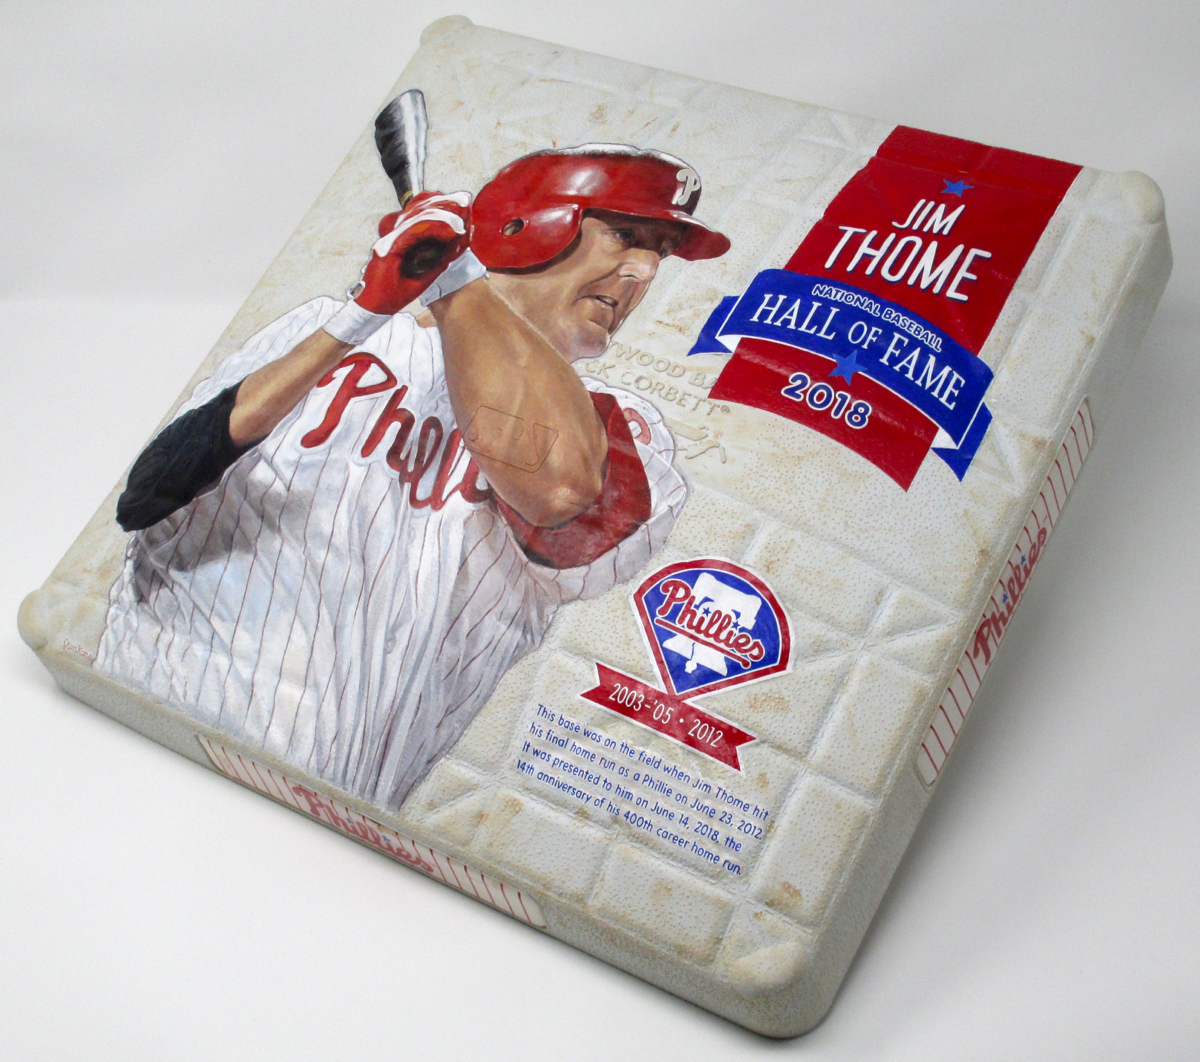 sean-kane-jim-thome-phillies-hall-of-fame-base-art-st5222.jpg